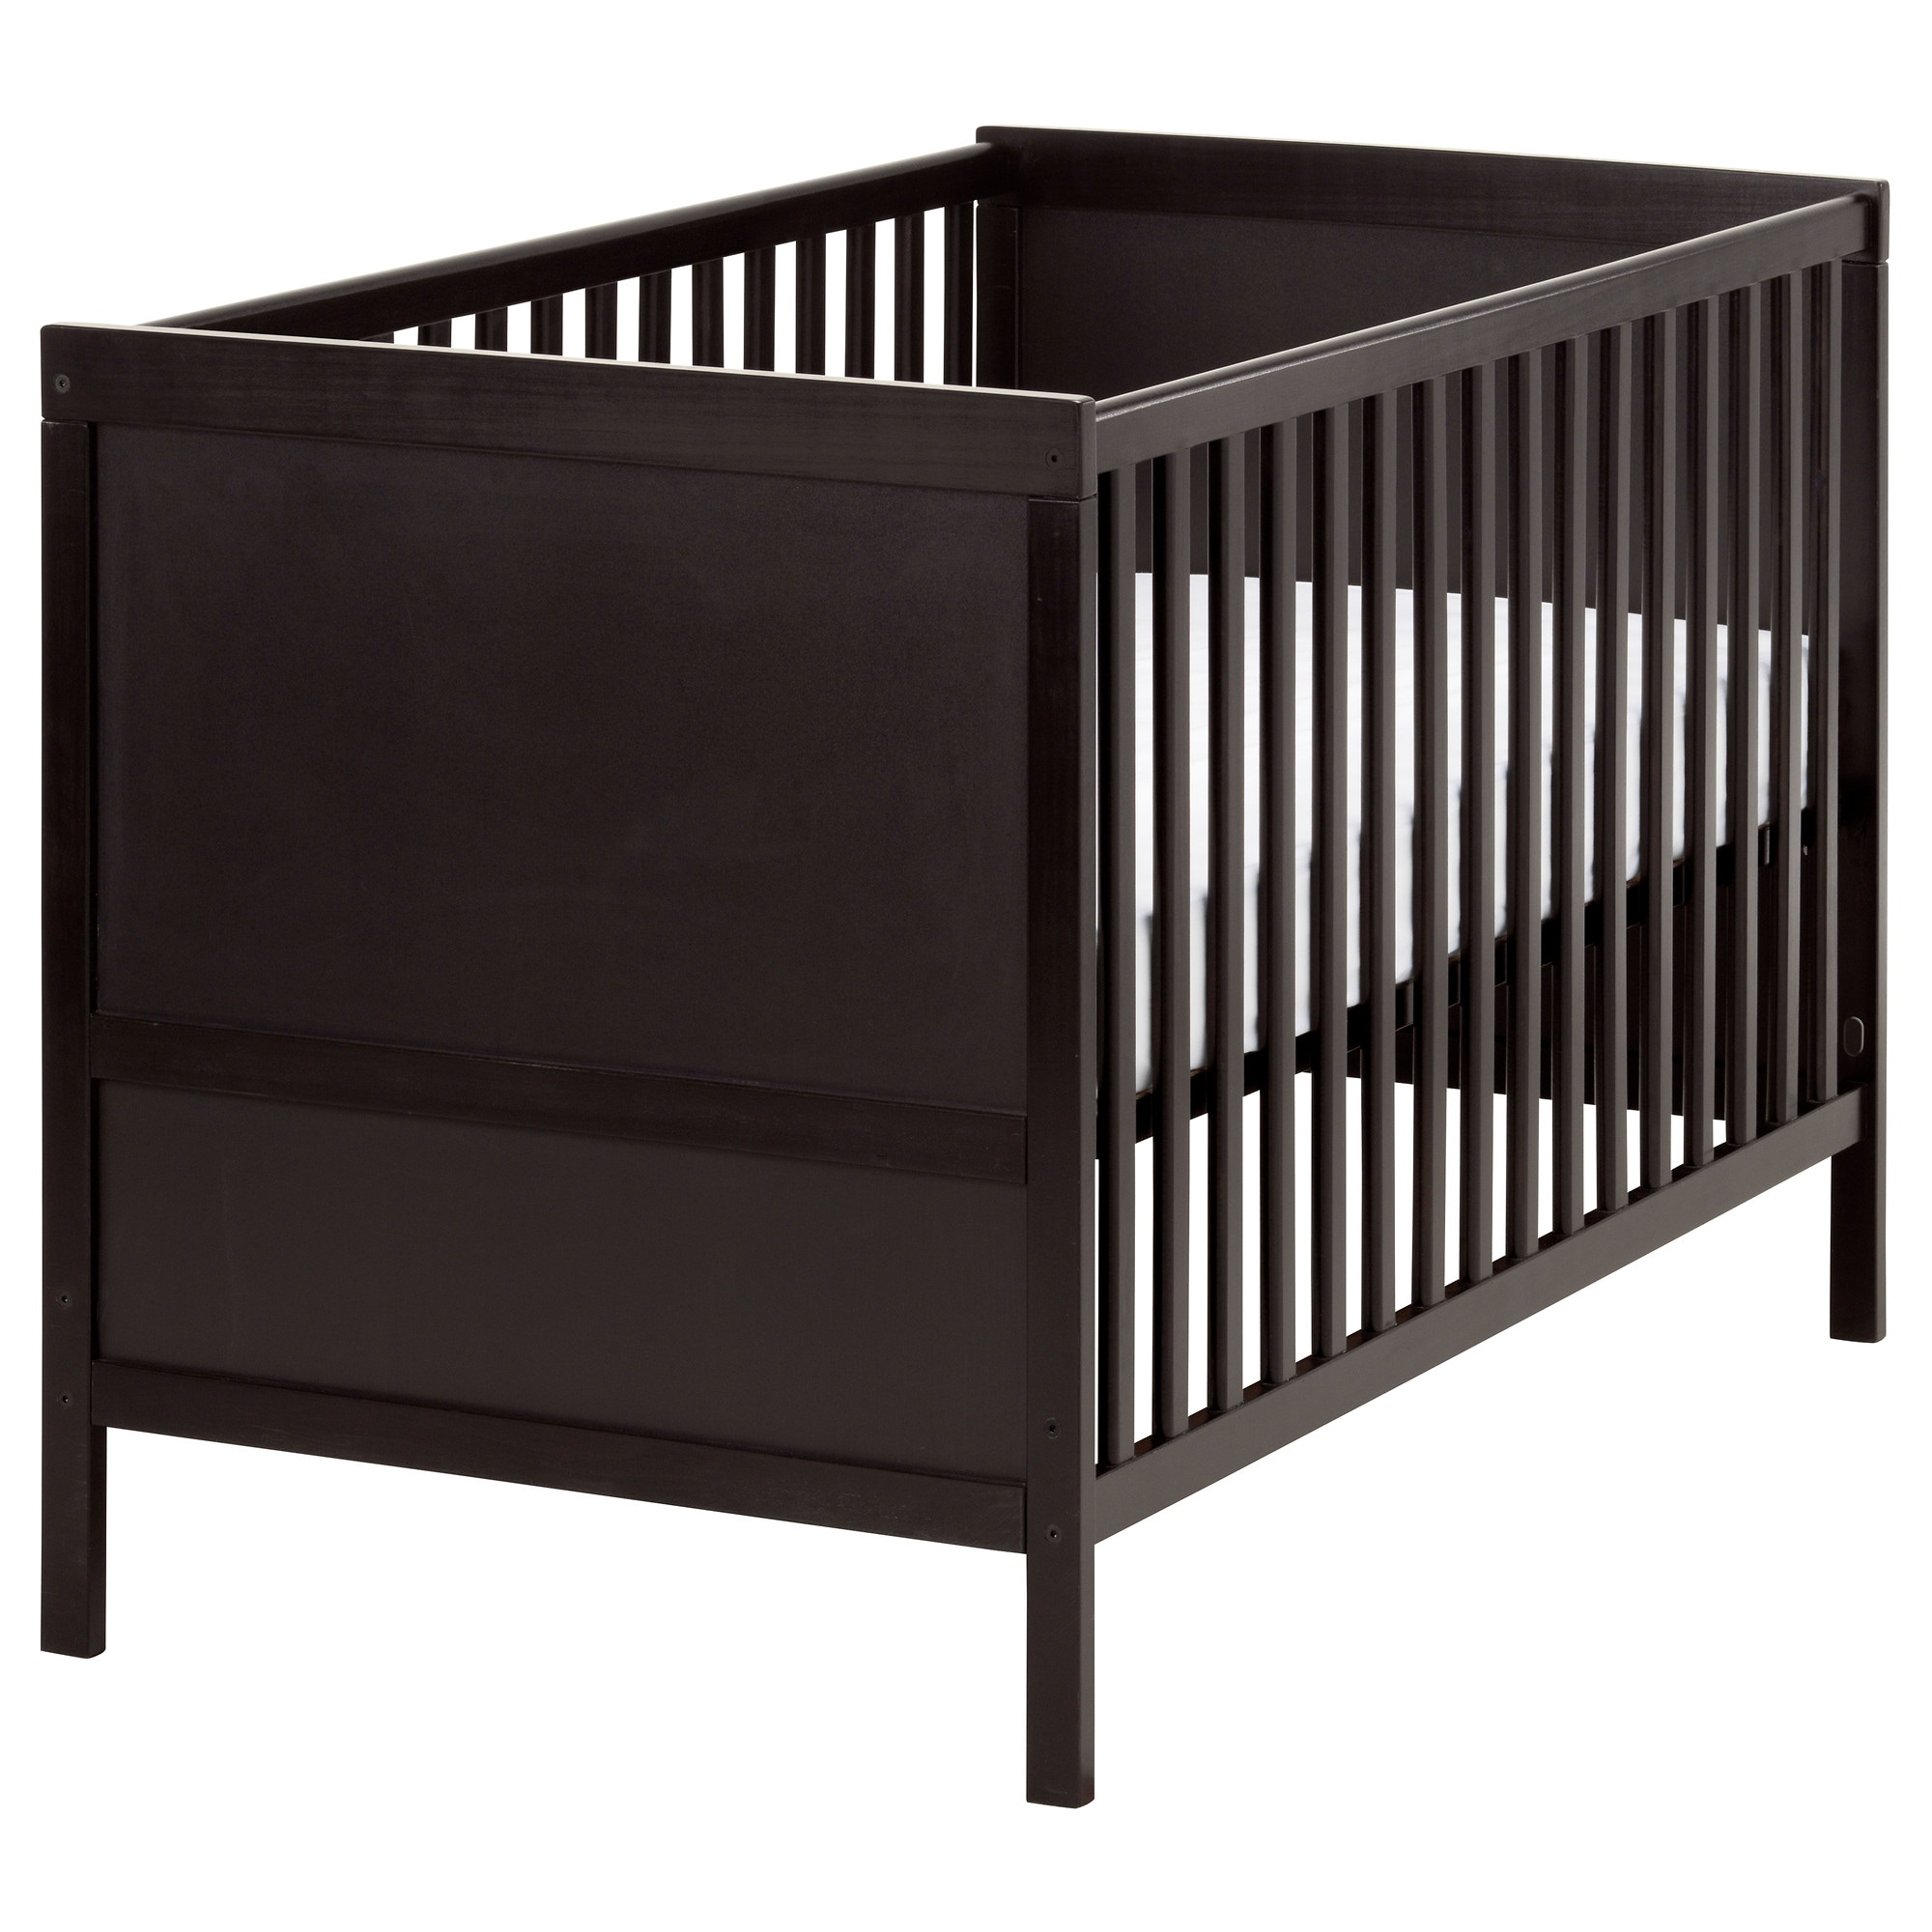 Crib for babies philippines - Sundvik Crib Black Brown Length 54 3 8 Width 29